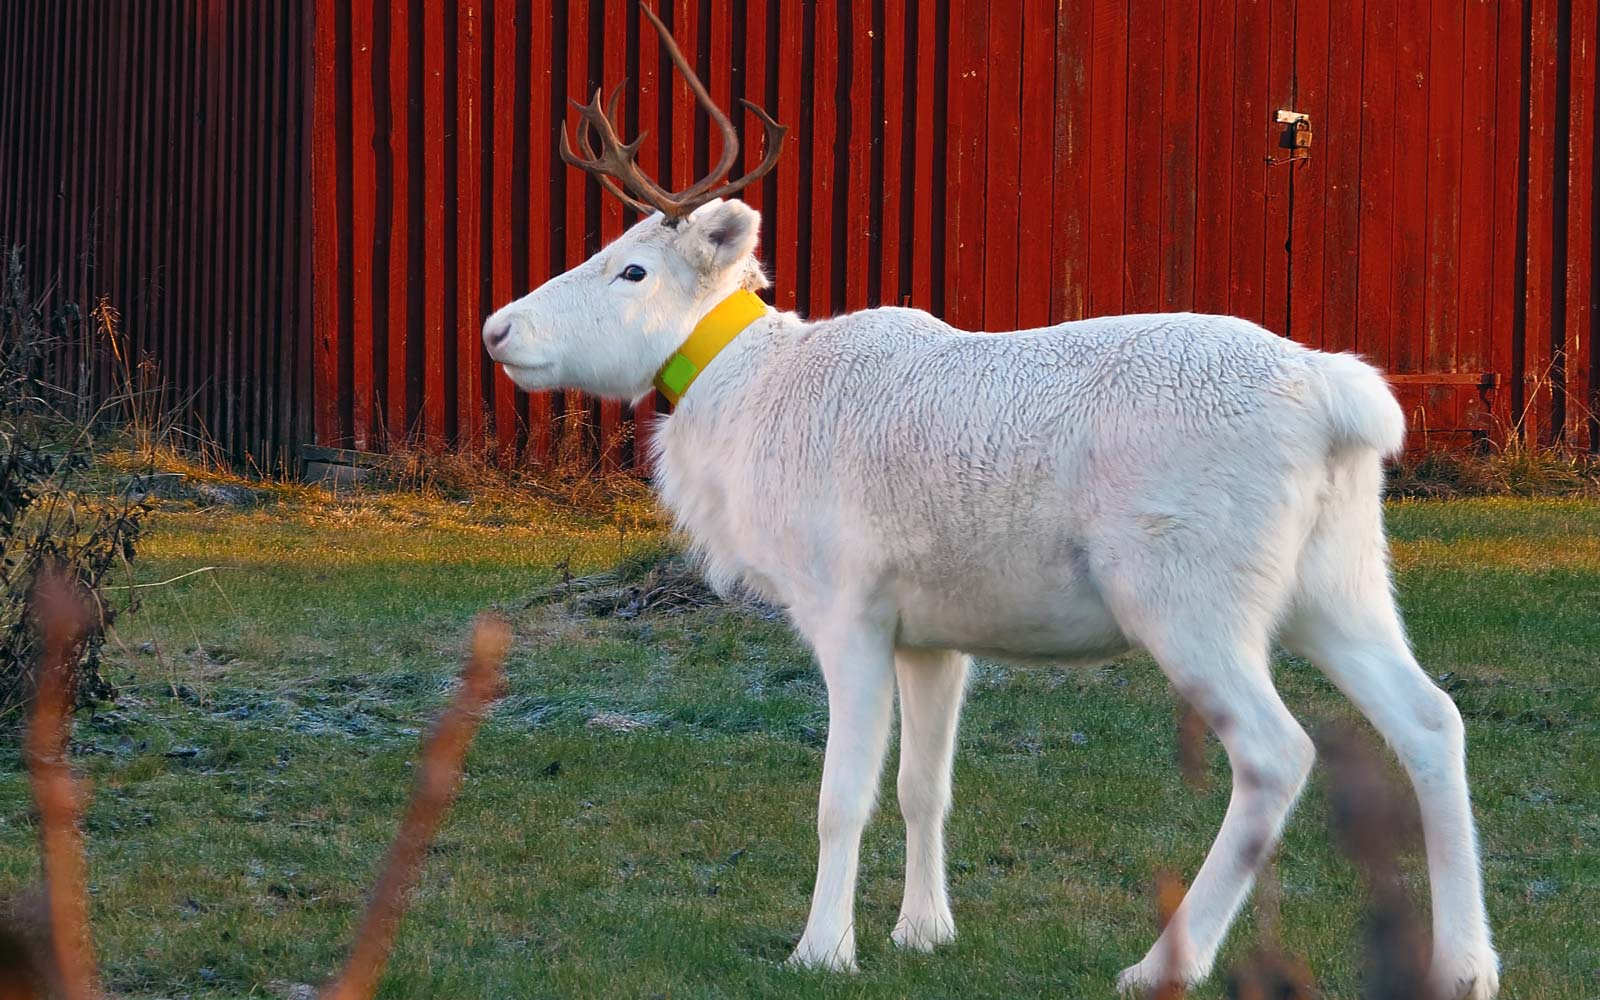 A Snow-white Reindeer Calf Was Spotted in Norway and It Is the Most Beautiful Thing You'll See All Day